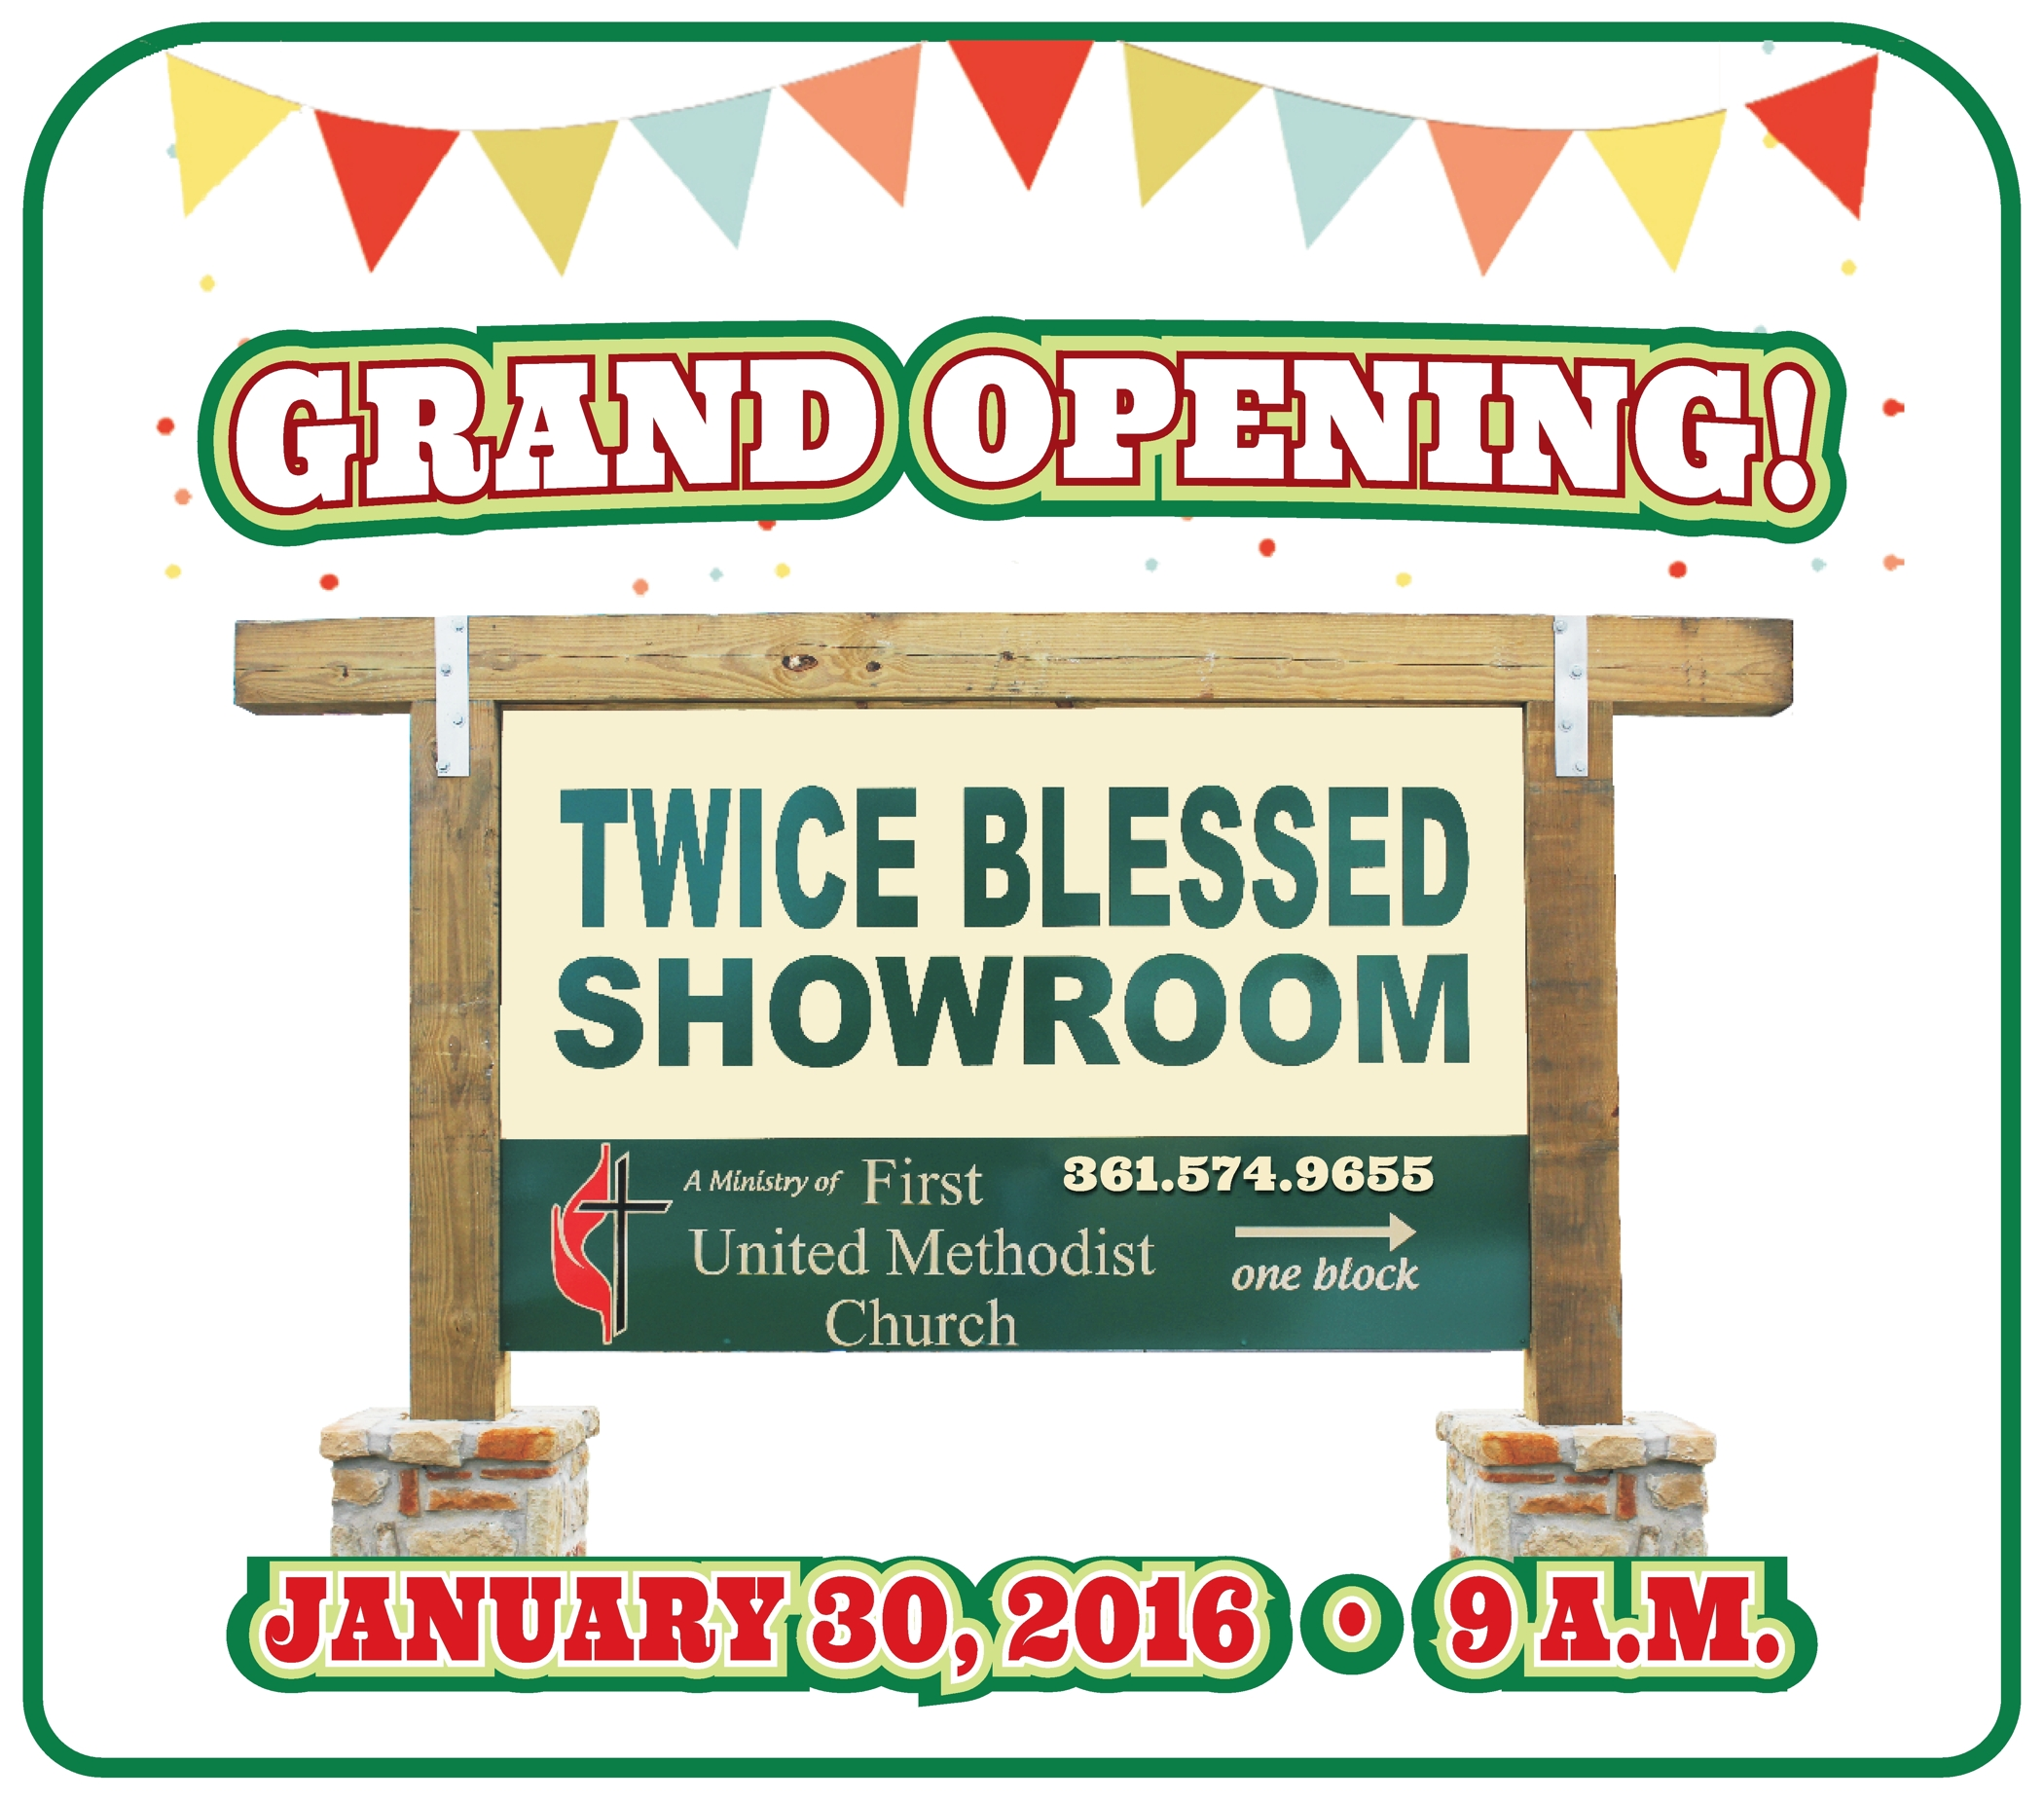 Twice 20blessed 20showroom  20grand 20opening 20  20jan 202016